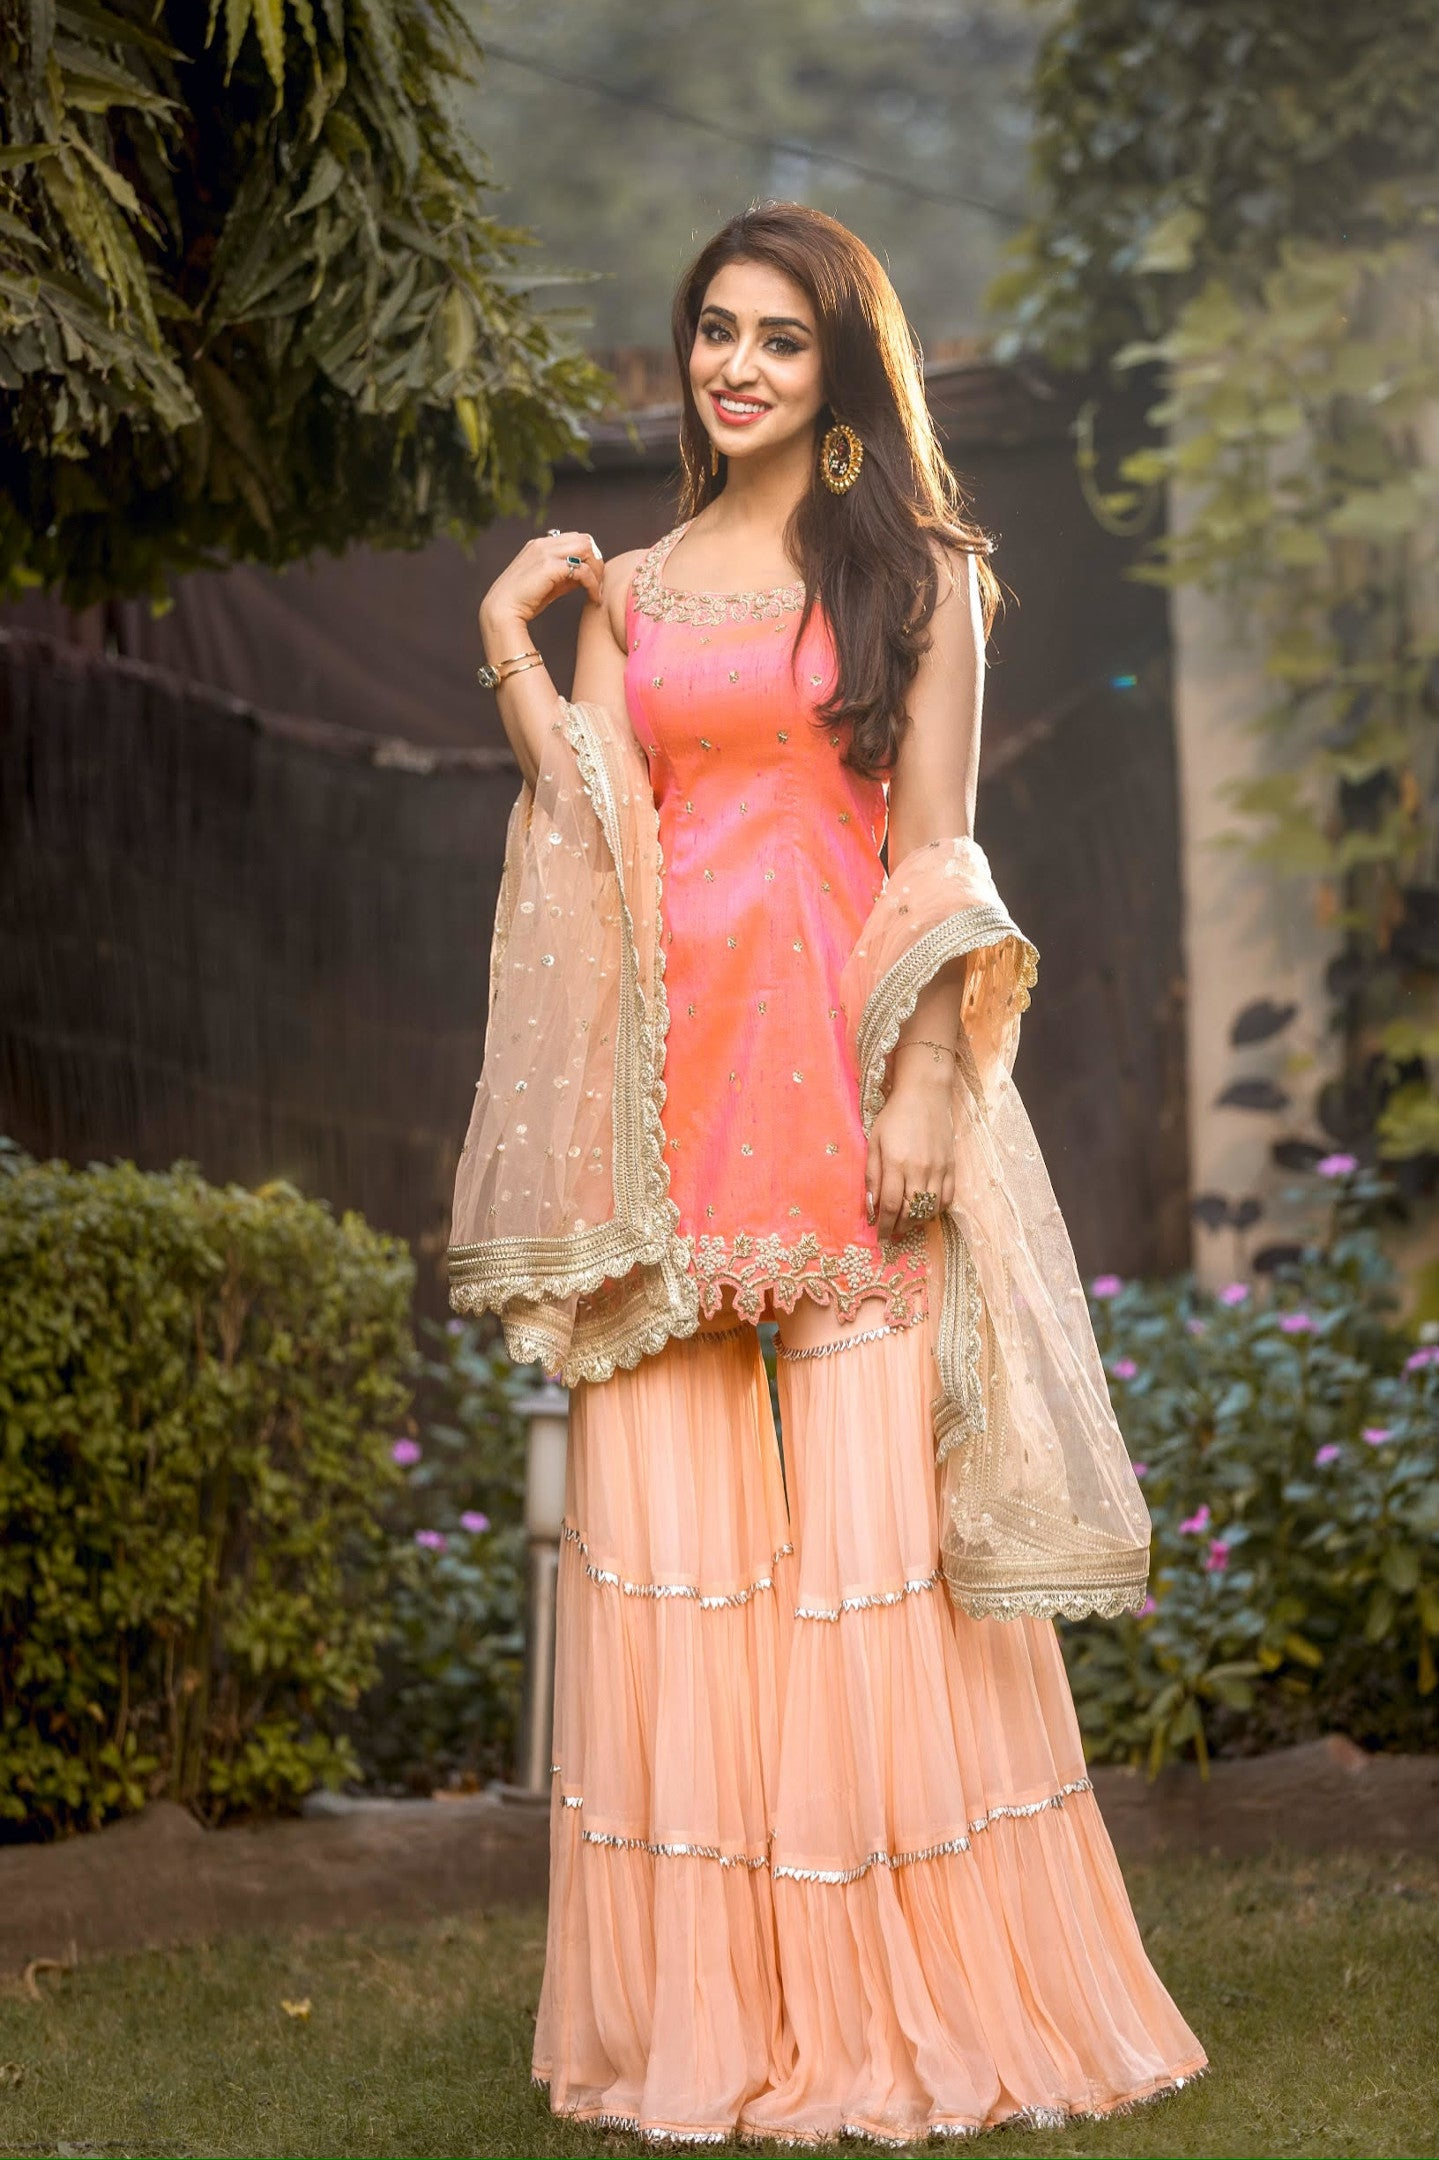 Manvi-Kapoor-Celebrity-Musskan-Sethi-wearing-Peach-Garara-Set-Ethnic-Indian-Womenswear